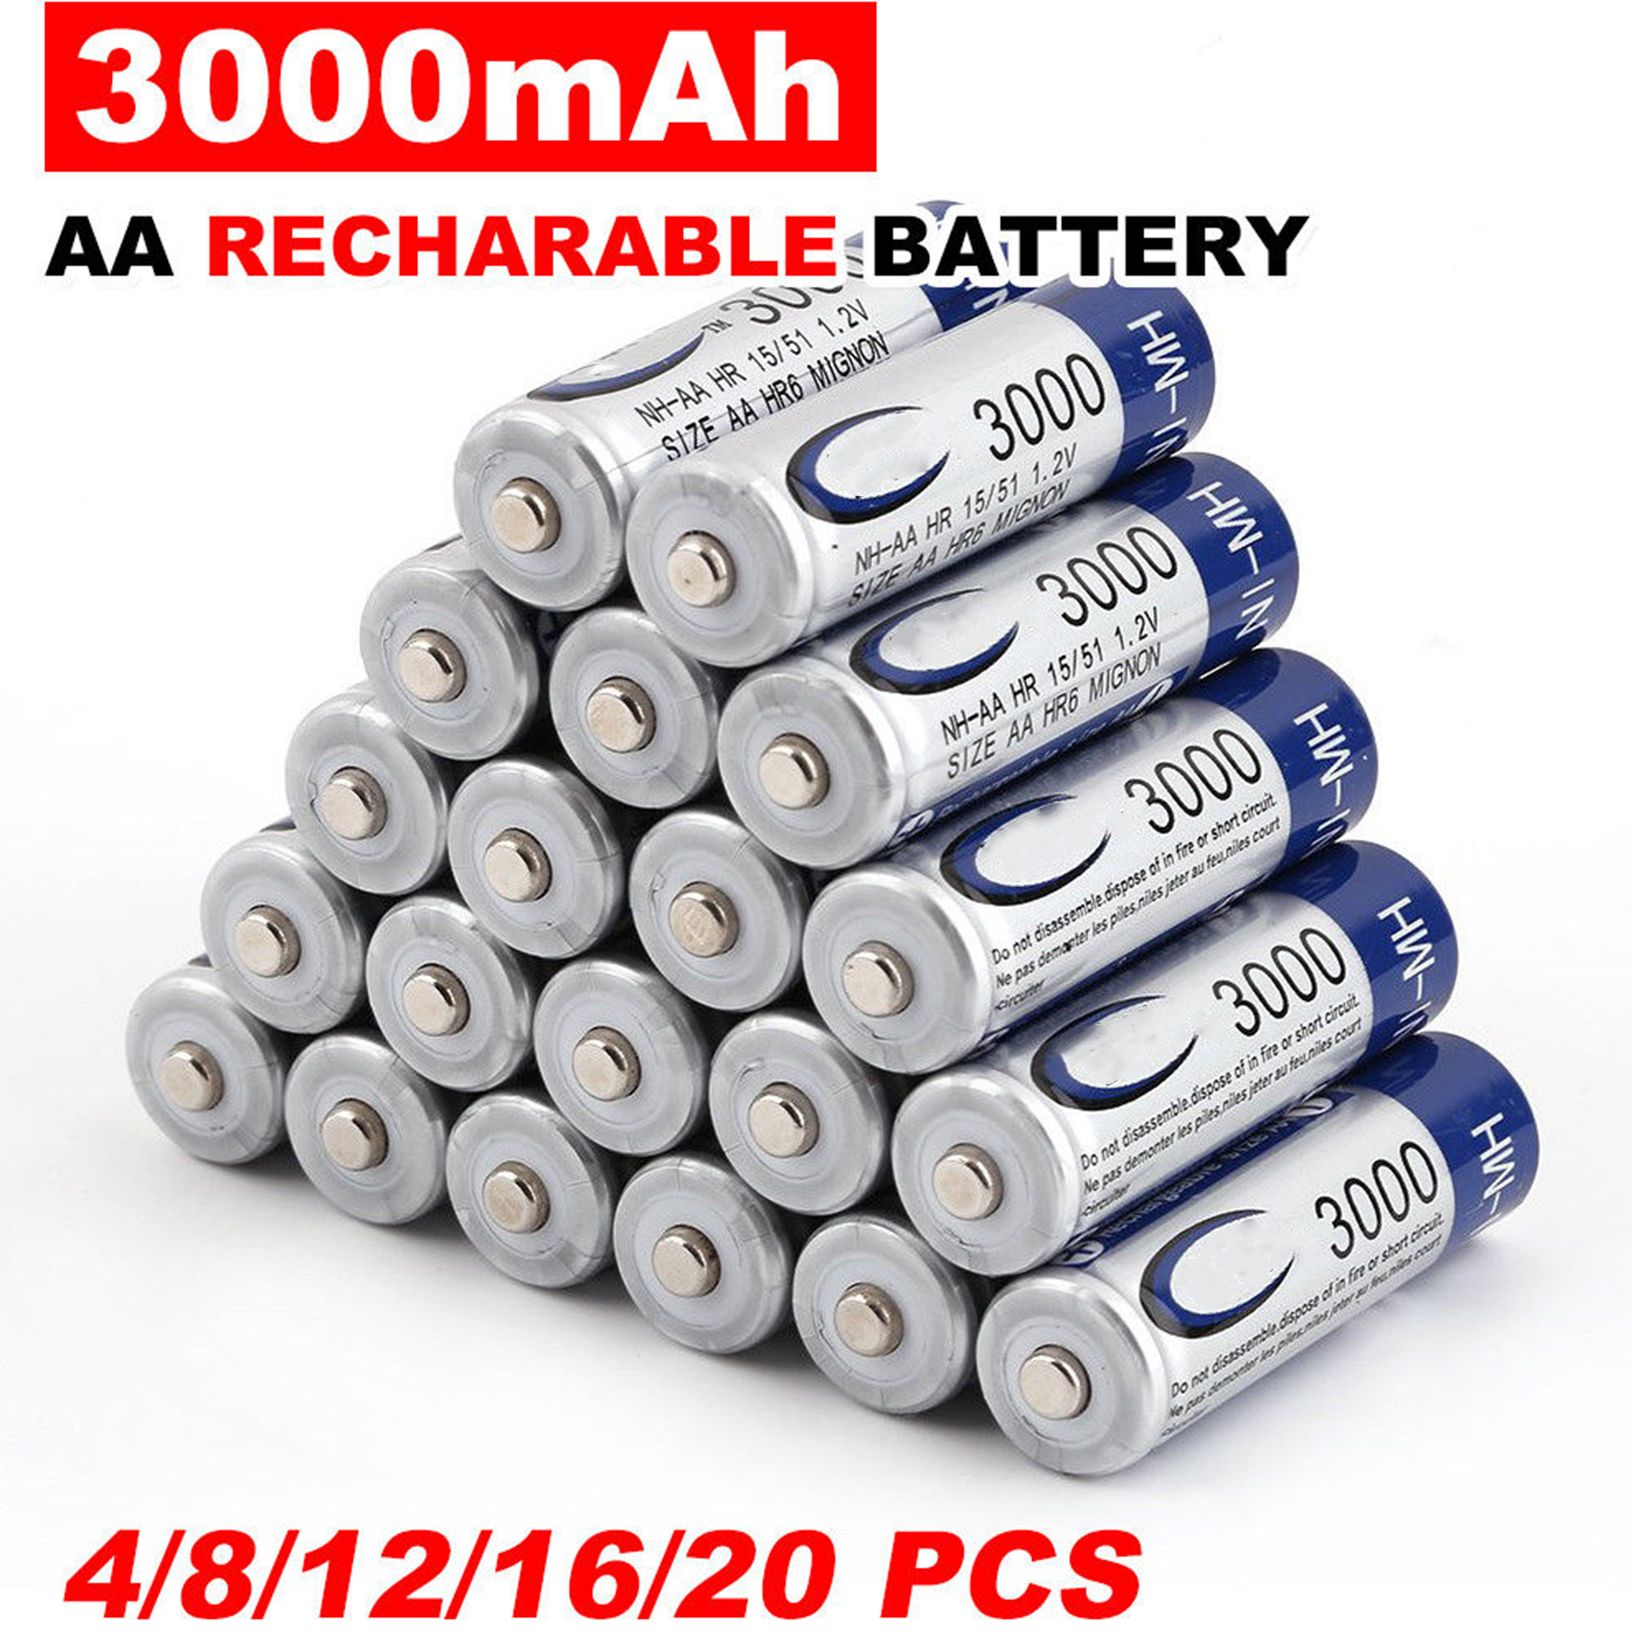 4-50 pcs 3000 mAh AA 2A NI-MH 1.2 V batterie Rechargeable Recharge batterie Rechargeable Ni-MH pré-chargée pour jouets Microphone caméra